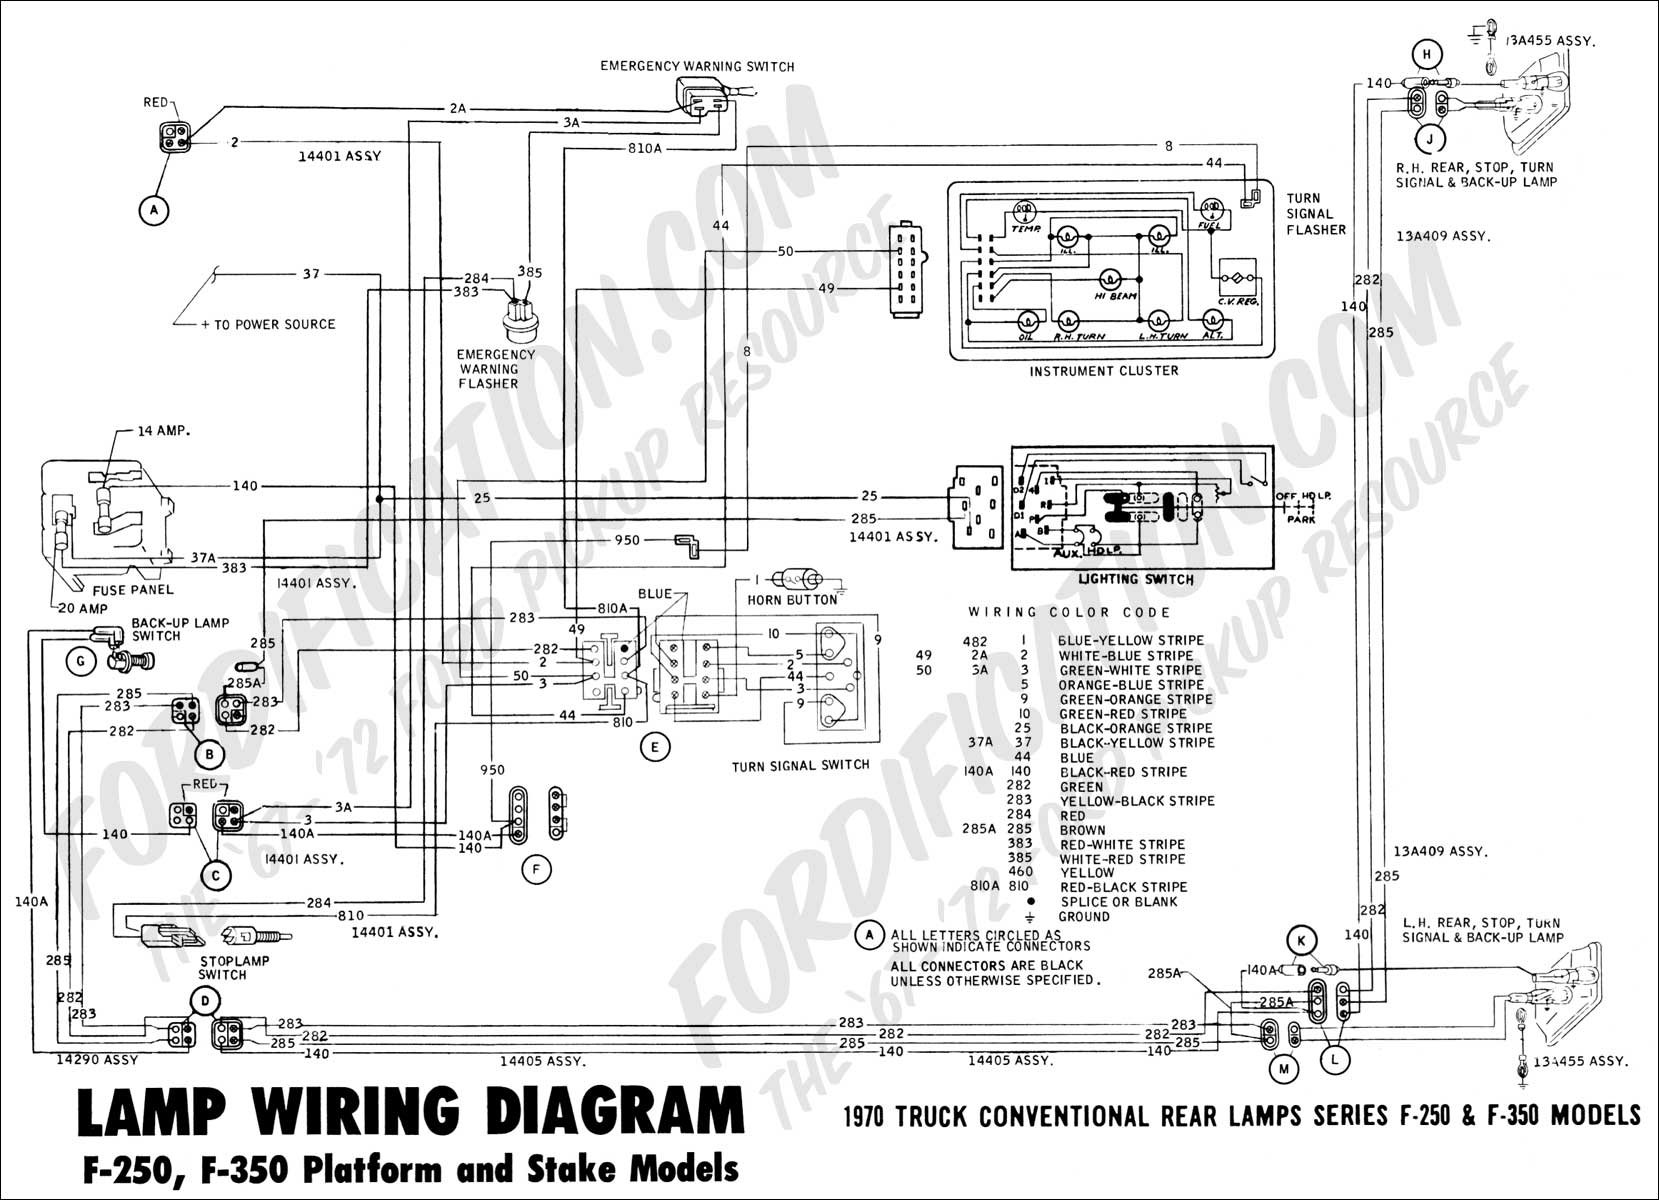 Headlight Wiring Diagram 1994 F350 Schematic Diagrams Dodge Pick Up Ford F 350 Todays 2008 Truck